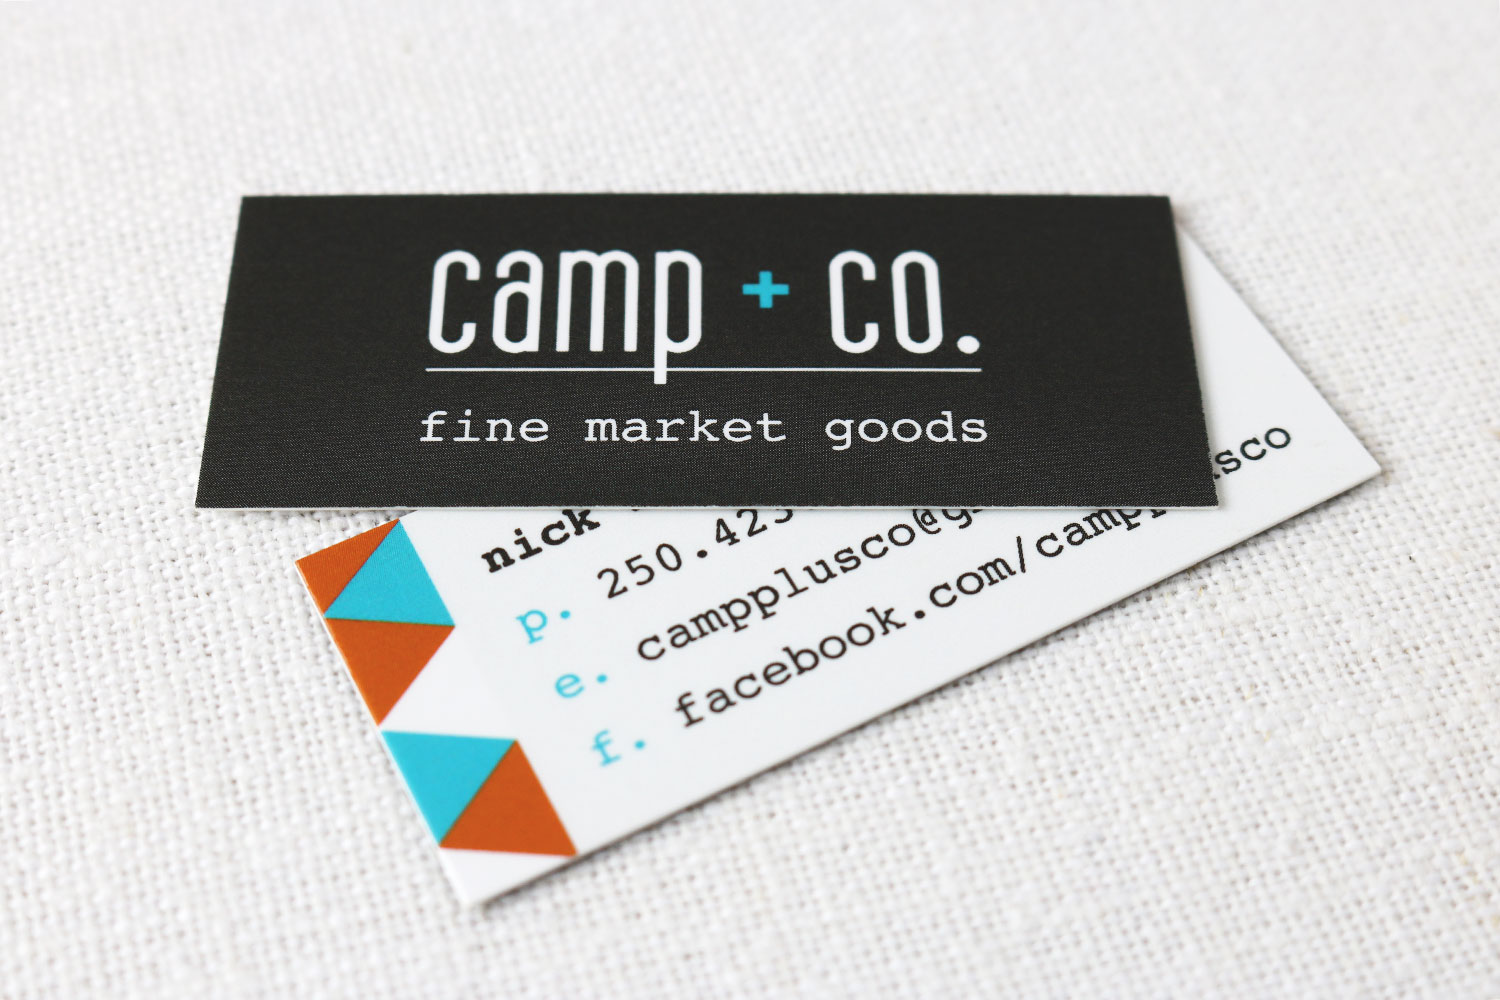 Camp + Co.